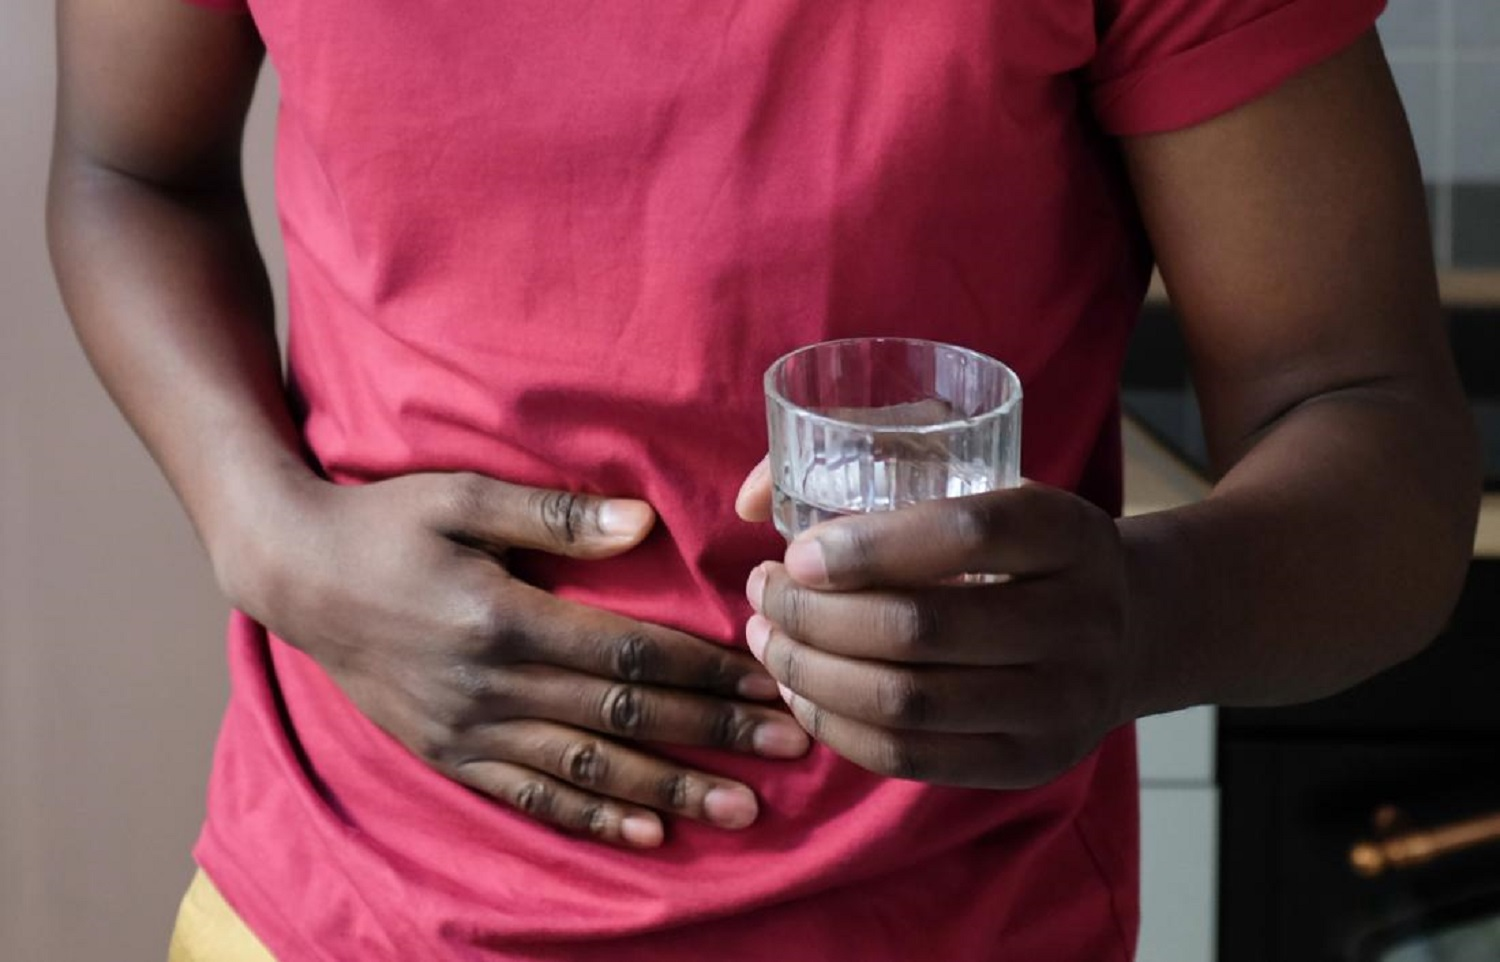 Physician advise ulcer patients against frequent use of painkillers